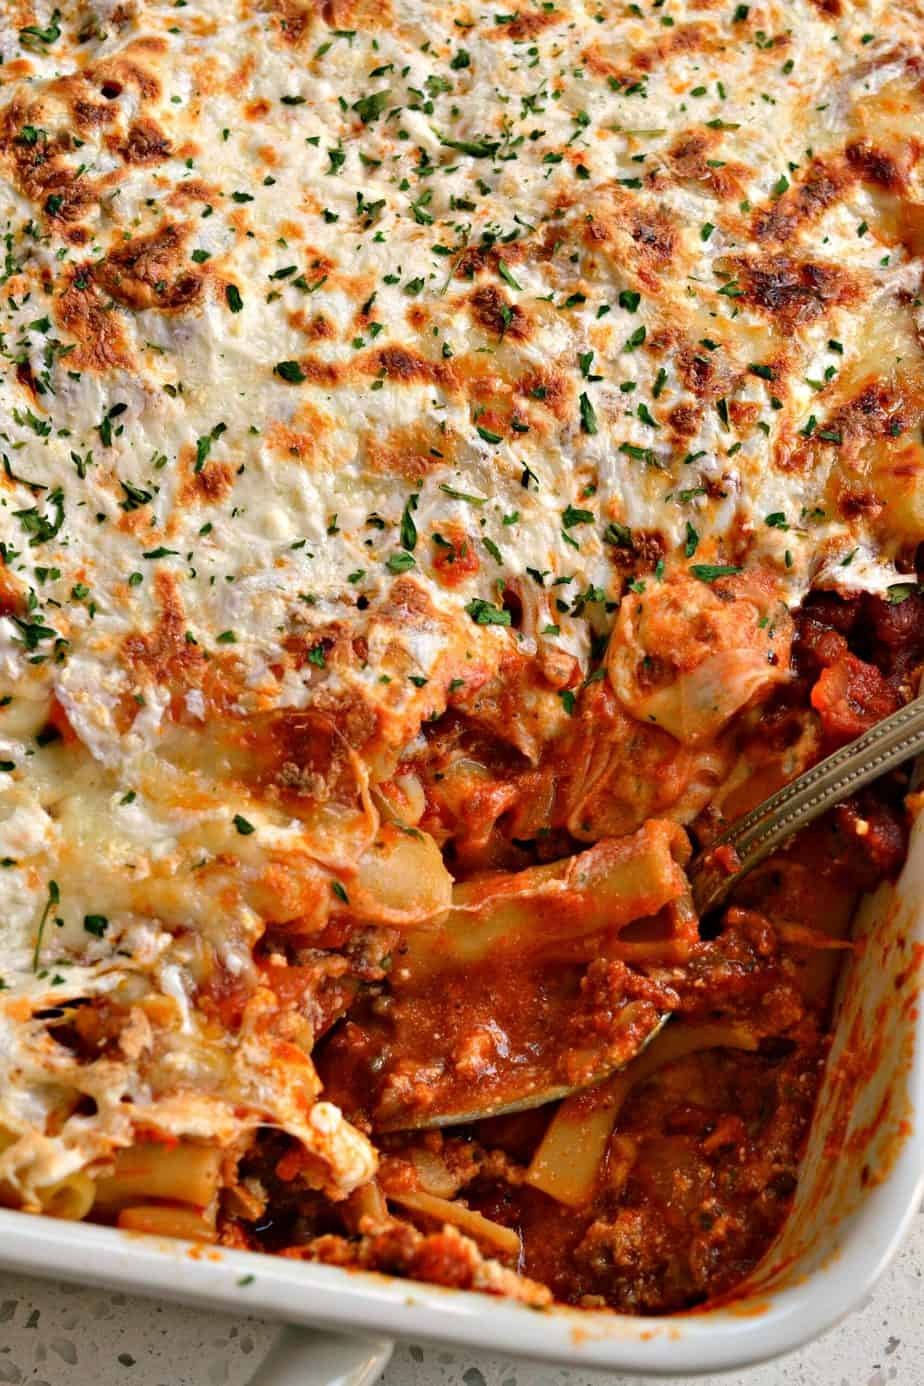 This Baked Ziti recipe is an easy friend and family favorite and serves quite a crowd.